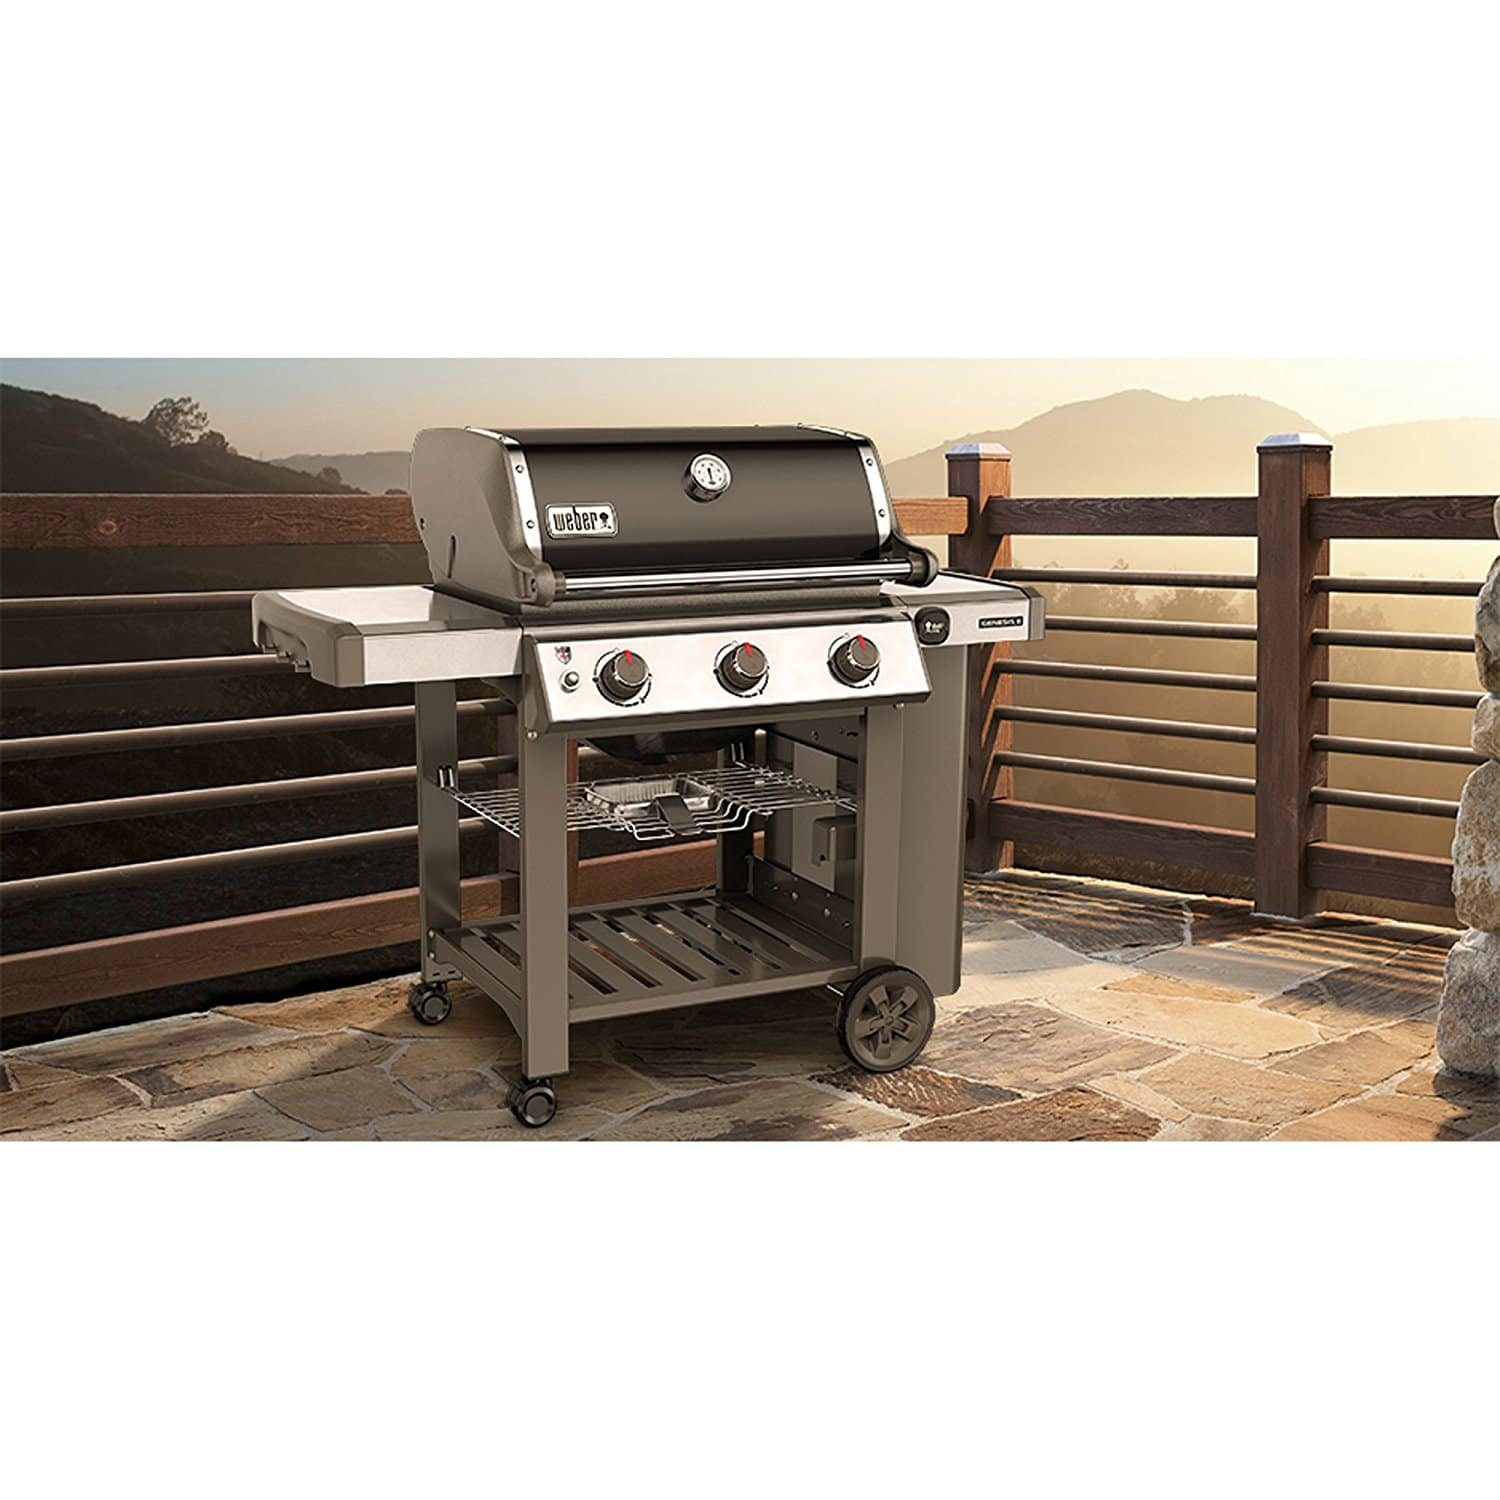 weber 61010001 genesis ii e 310 liquid propane grill the grilling life. Black Bedroom Furniture Sets. Home Design Ideas